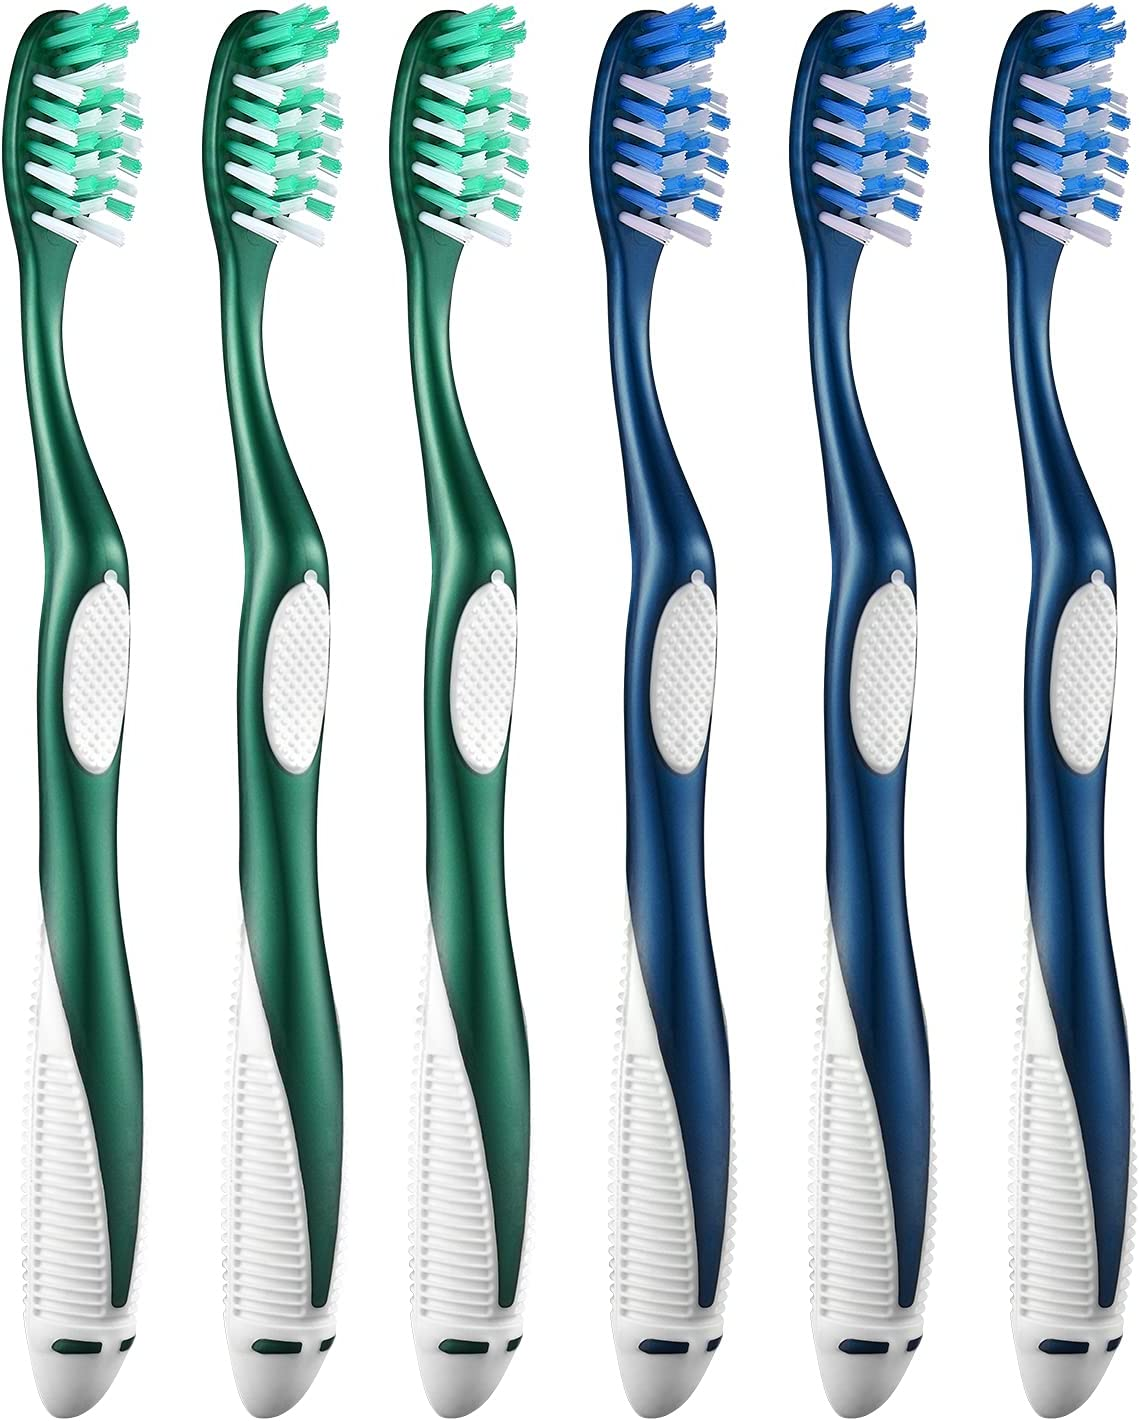 Fremouth Hard Toothbrushes supreme Sales for Adults Bristles Cross Firm with